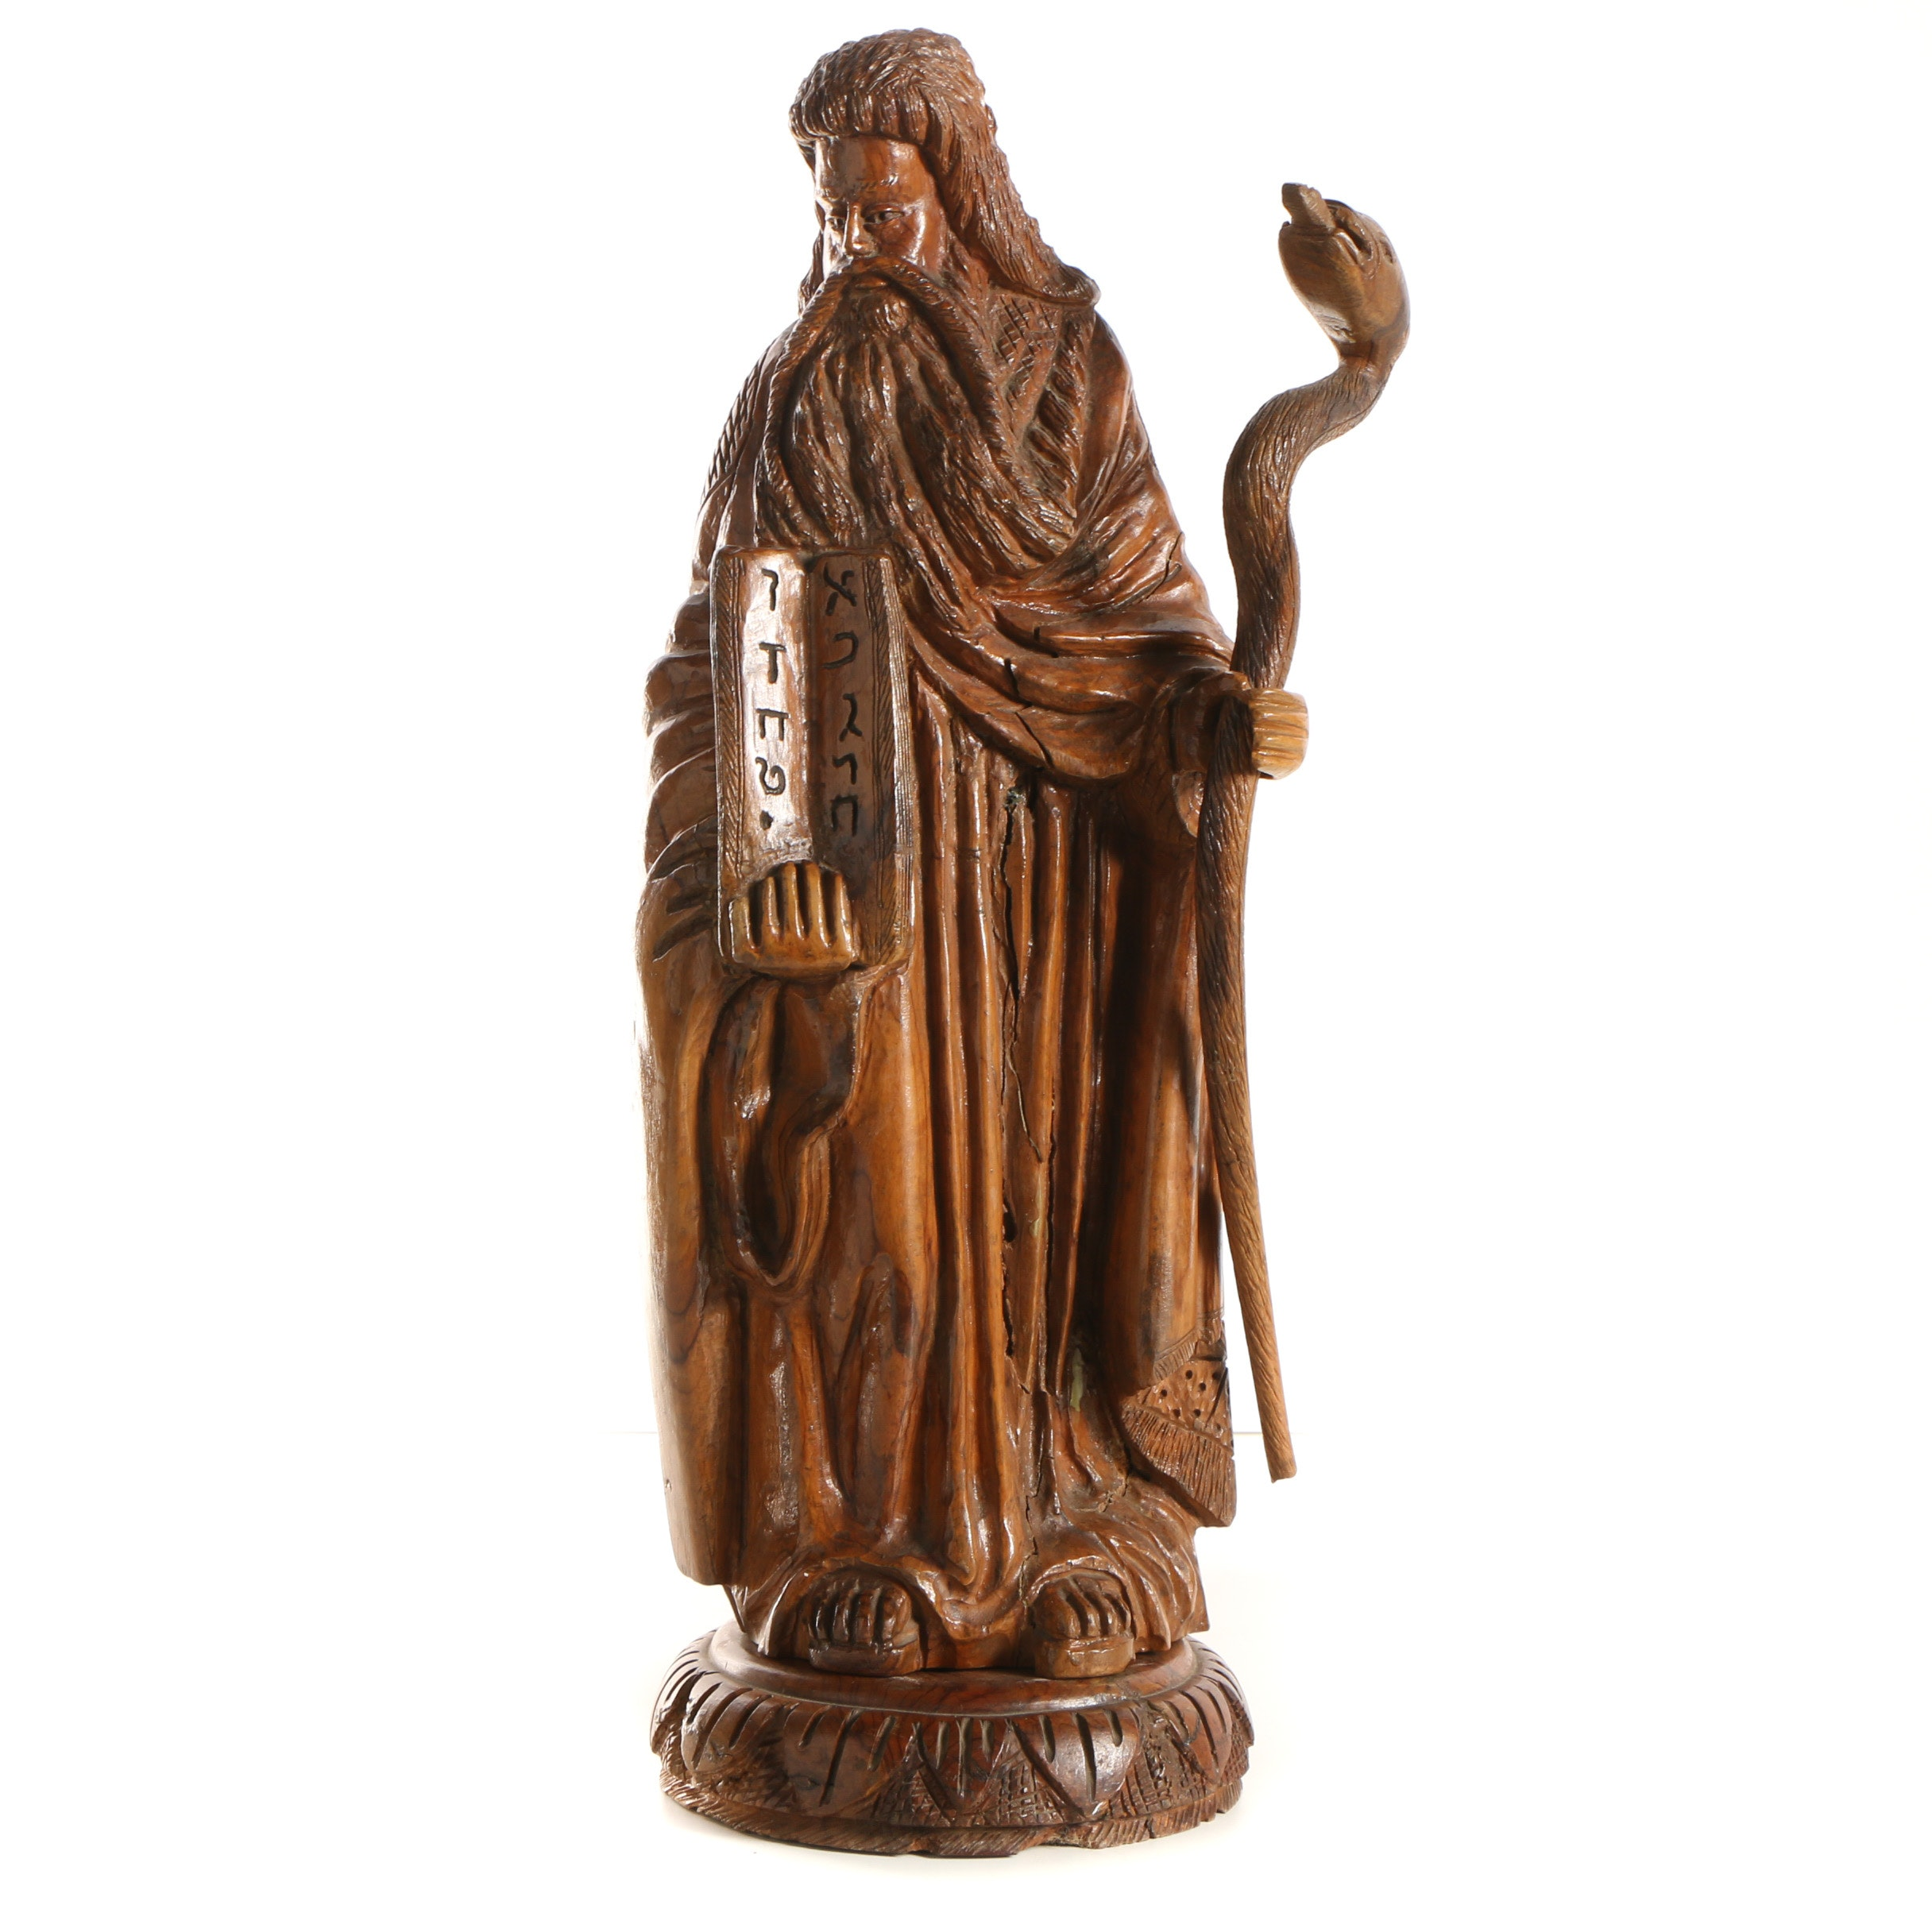 Hand Carved Wooden Sculpture of Moses